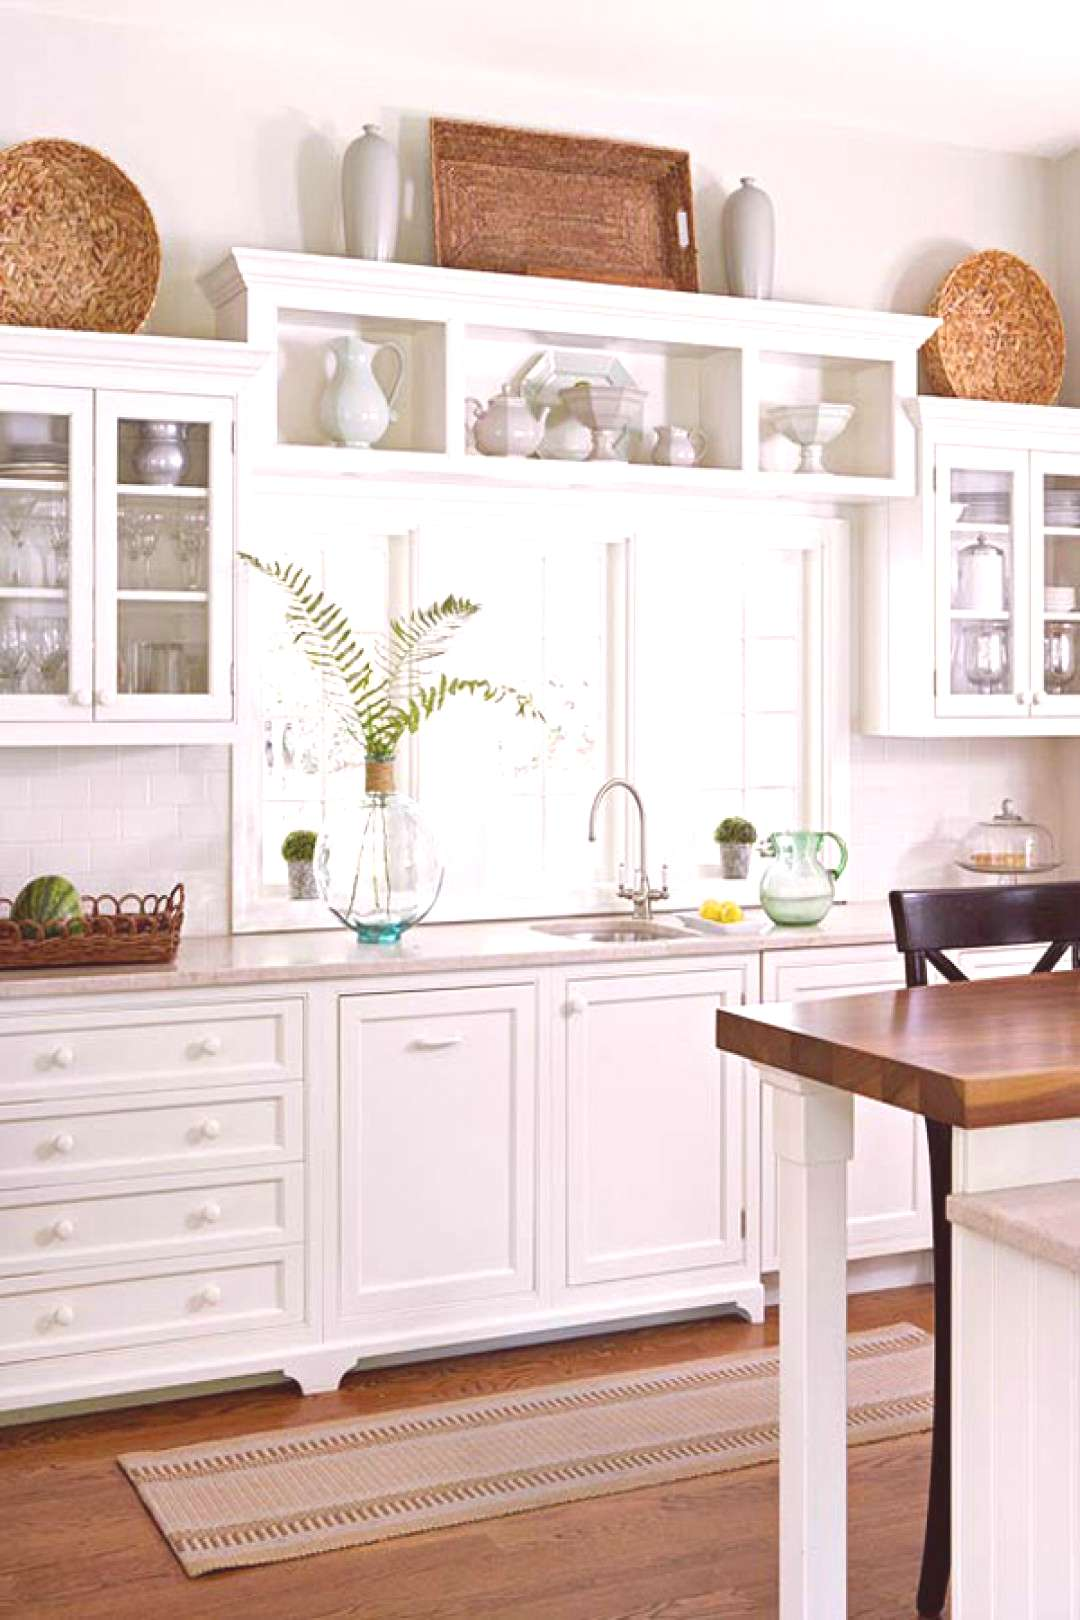 10 Stylish Ideas for Decorating Above Kitchen Cabinets#cabinets